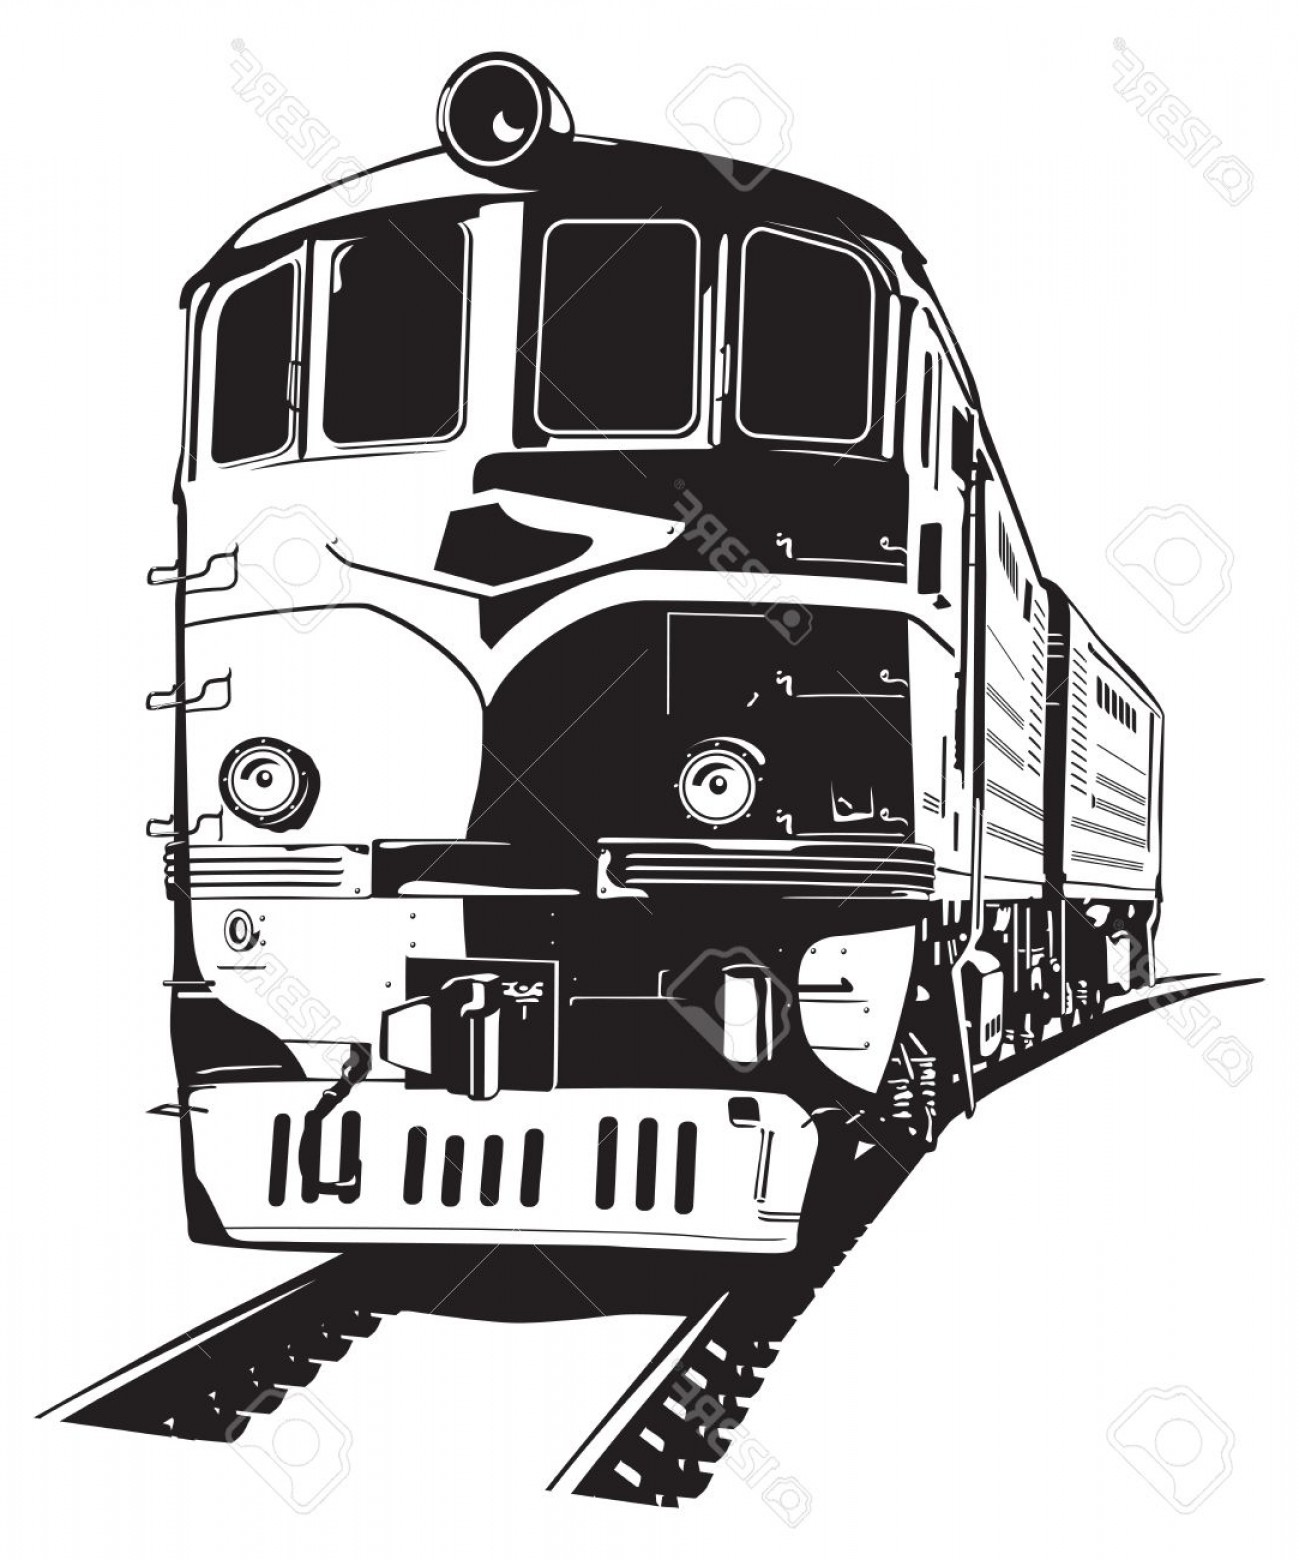 Car Vector Front Elevation: Photostock Vector Vector Illustration Of A Diesel Locomotive